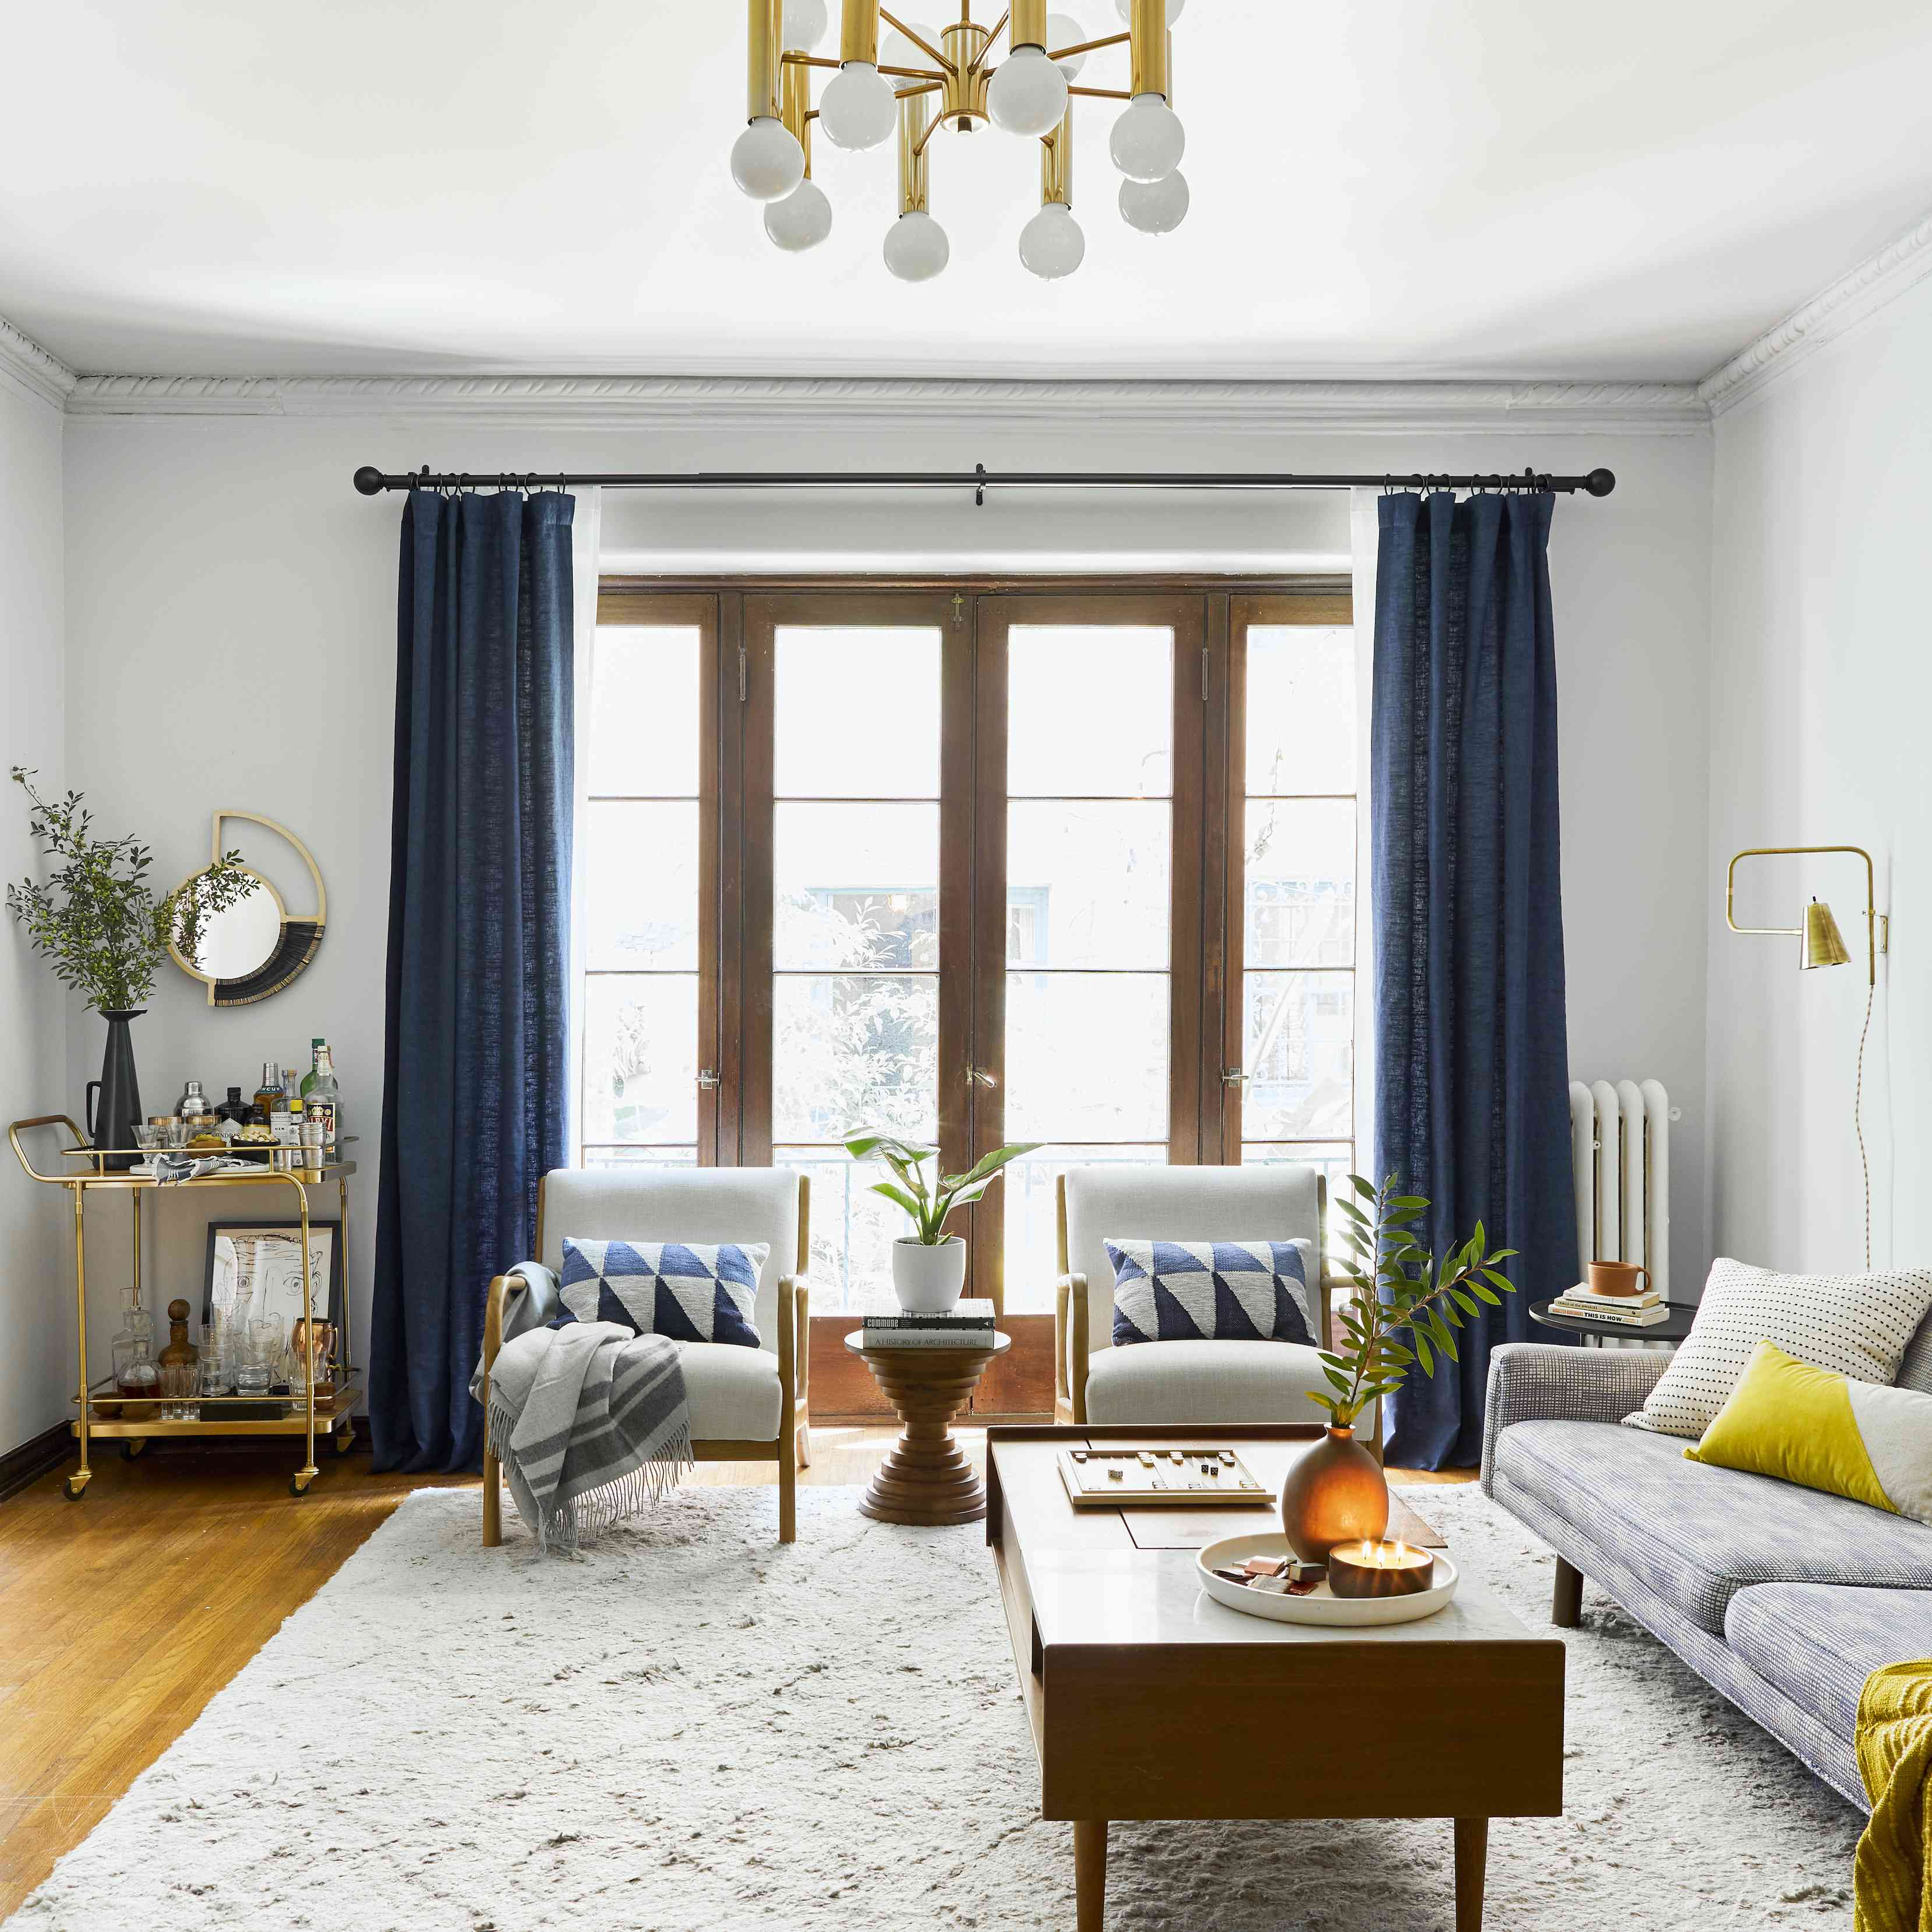 Living room with disguised radiator